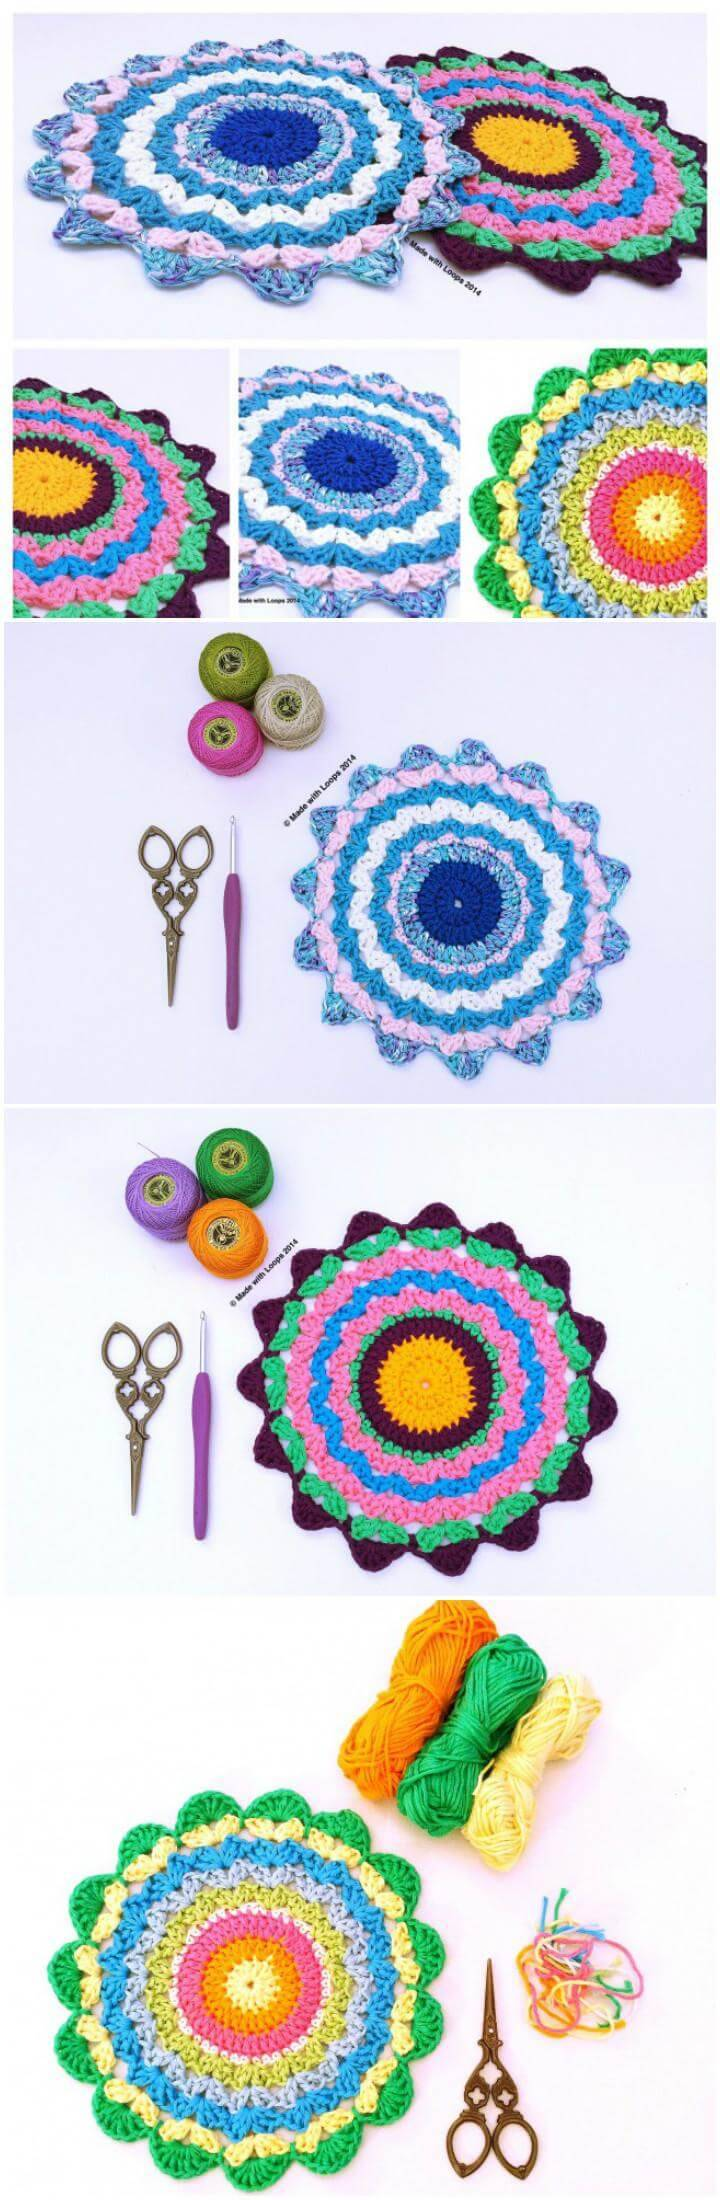 beautiful crochet mandalas